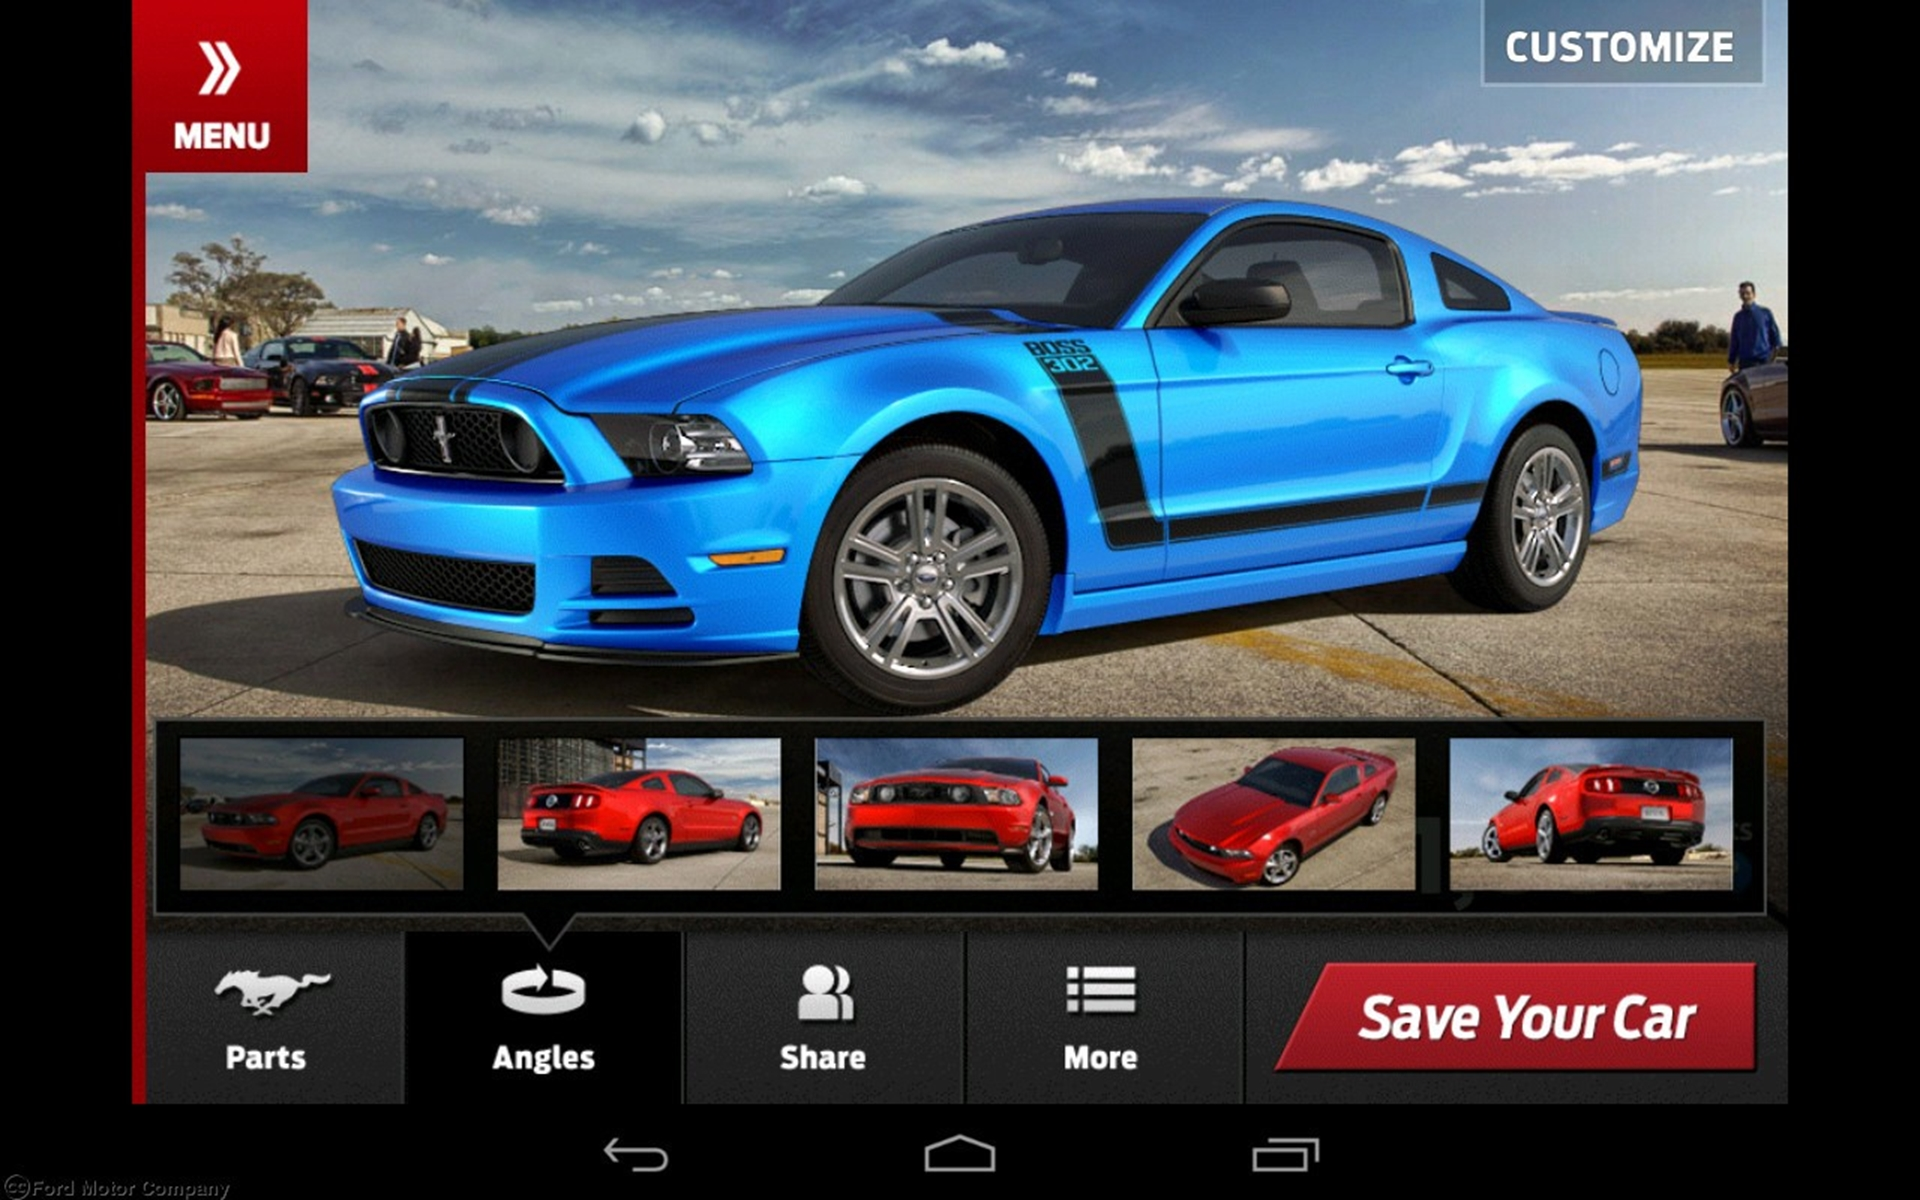 Ford App